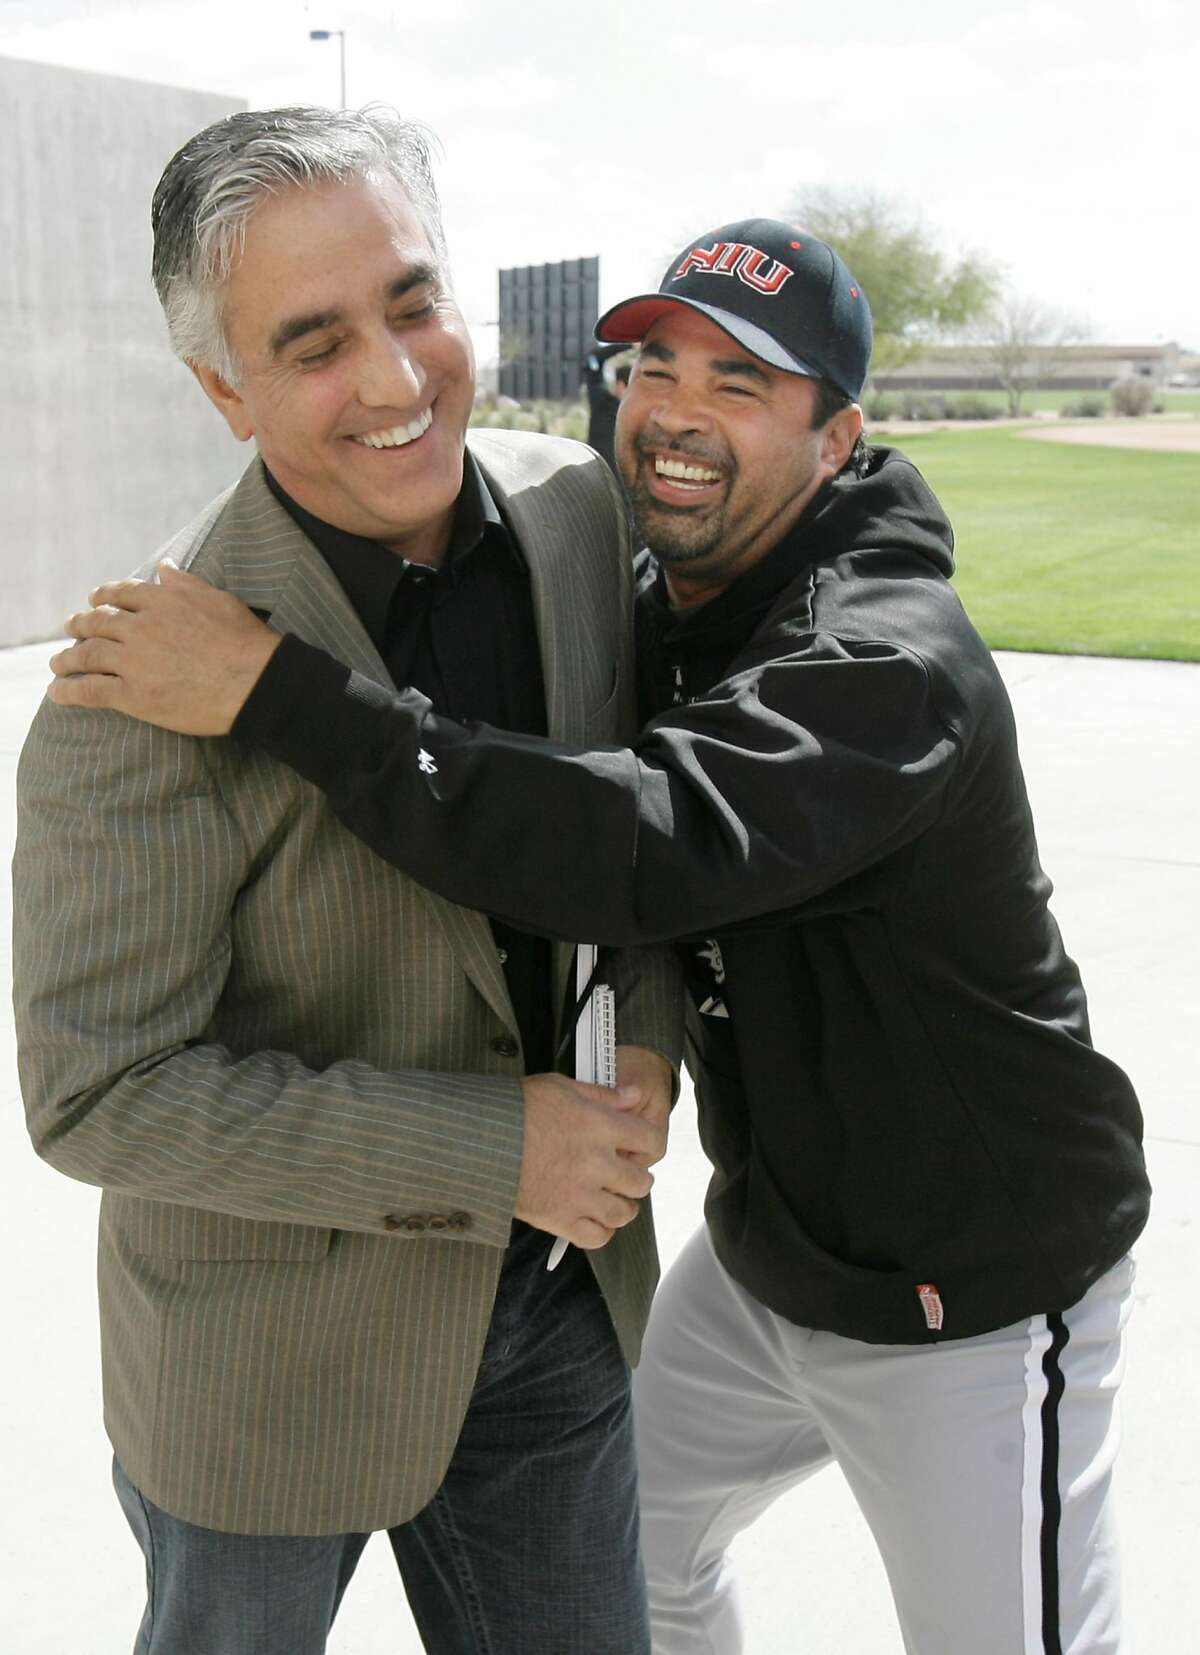 Chicago White Sox' manager Ozzie Guillen jokes with ESPN's Pedro Gomez after a news conference during pitchers and catchers first day of baseball spring training Saturday, Feb. 16, 2008, in Tucson, Az.  (AP Photo/M. Spencer Green)